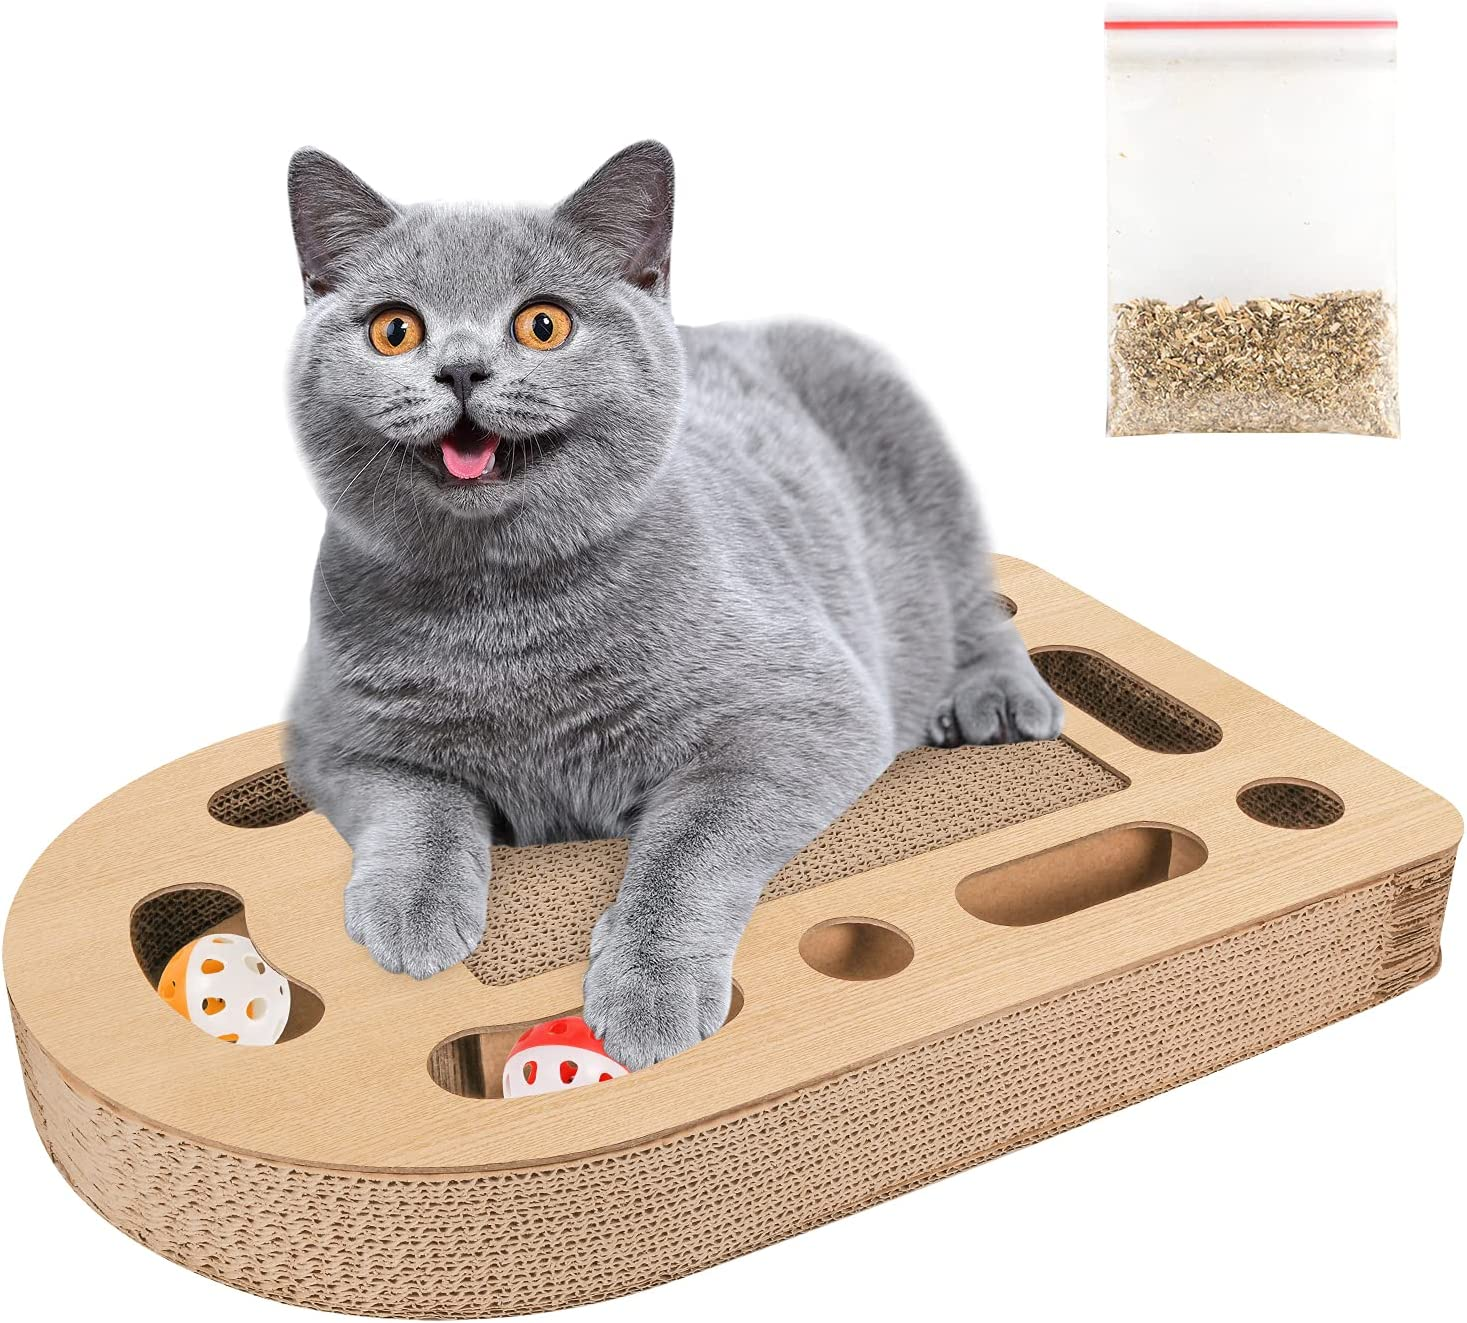 SU87HOMU 2 in 1 Cat Scratch Board Spherical Toy Bell Training Toys Indoor Toys for Grinding Claws Busy Boxes Scratch Boards Can Prevent Furniture Damage